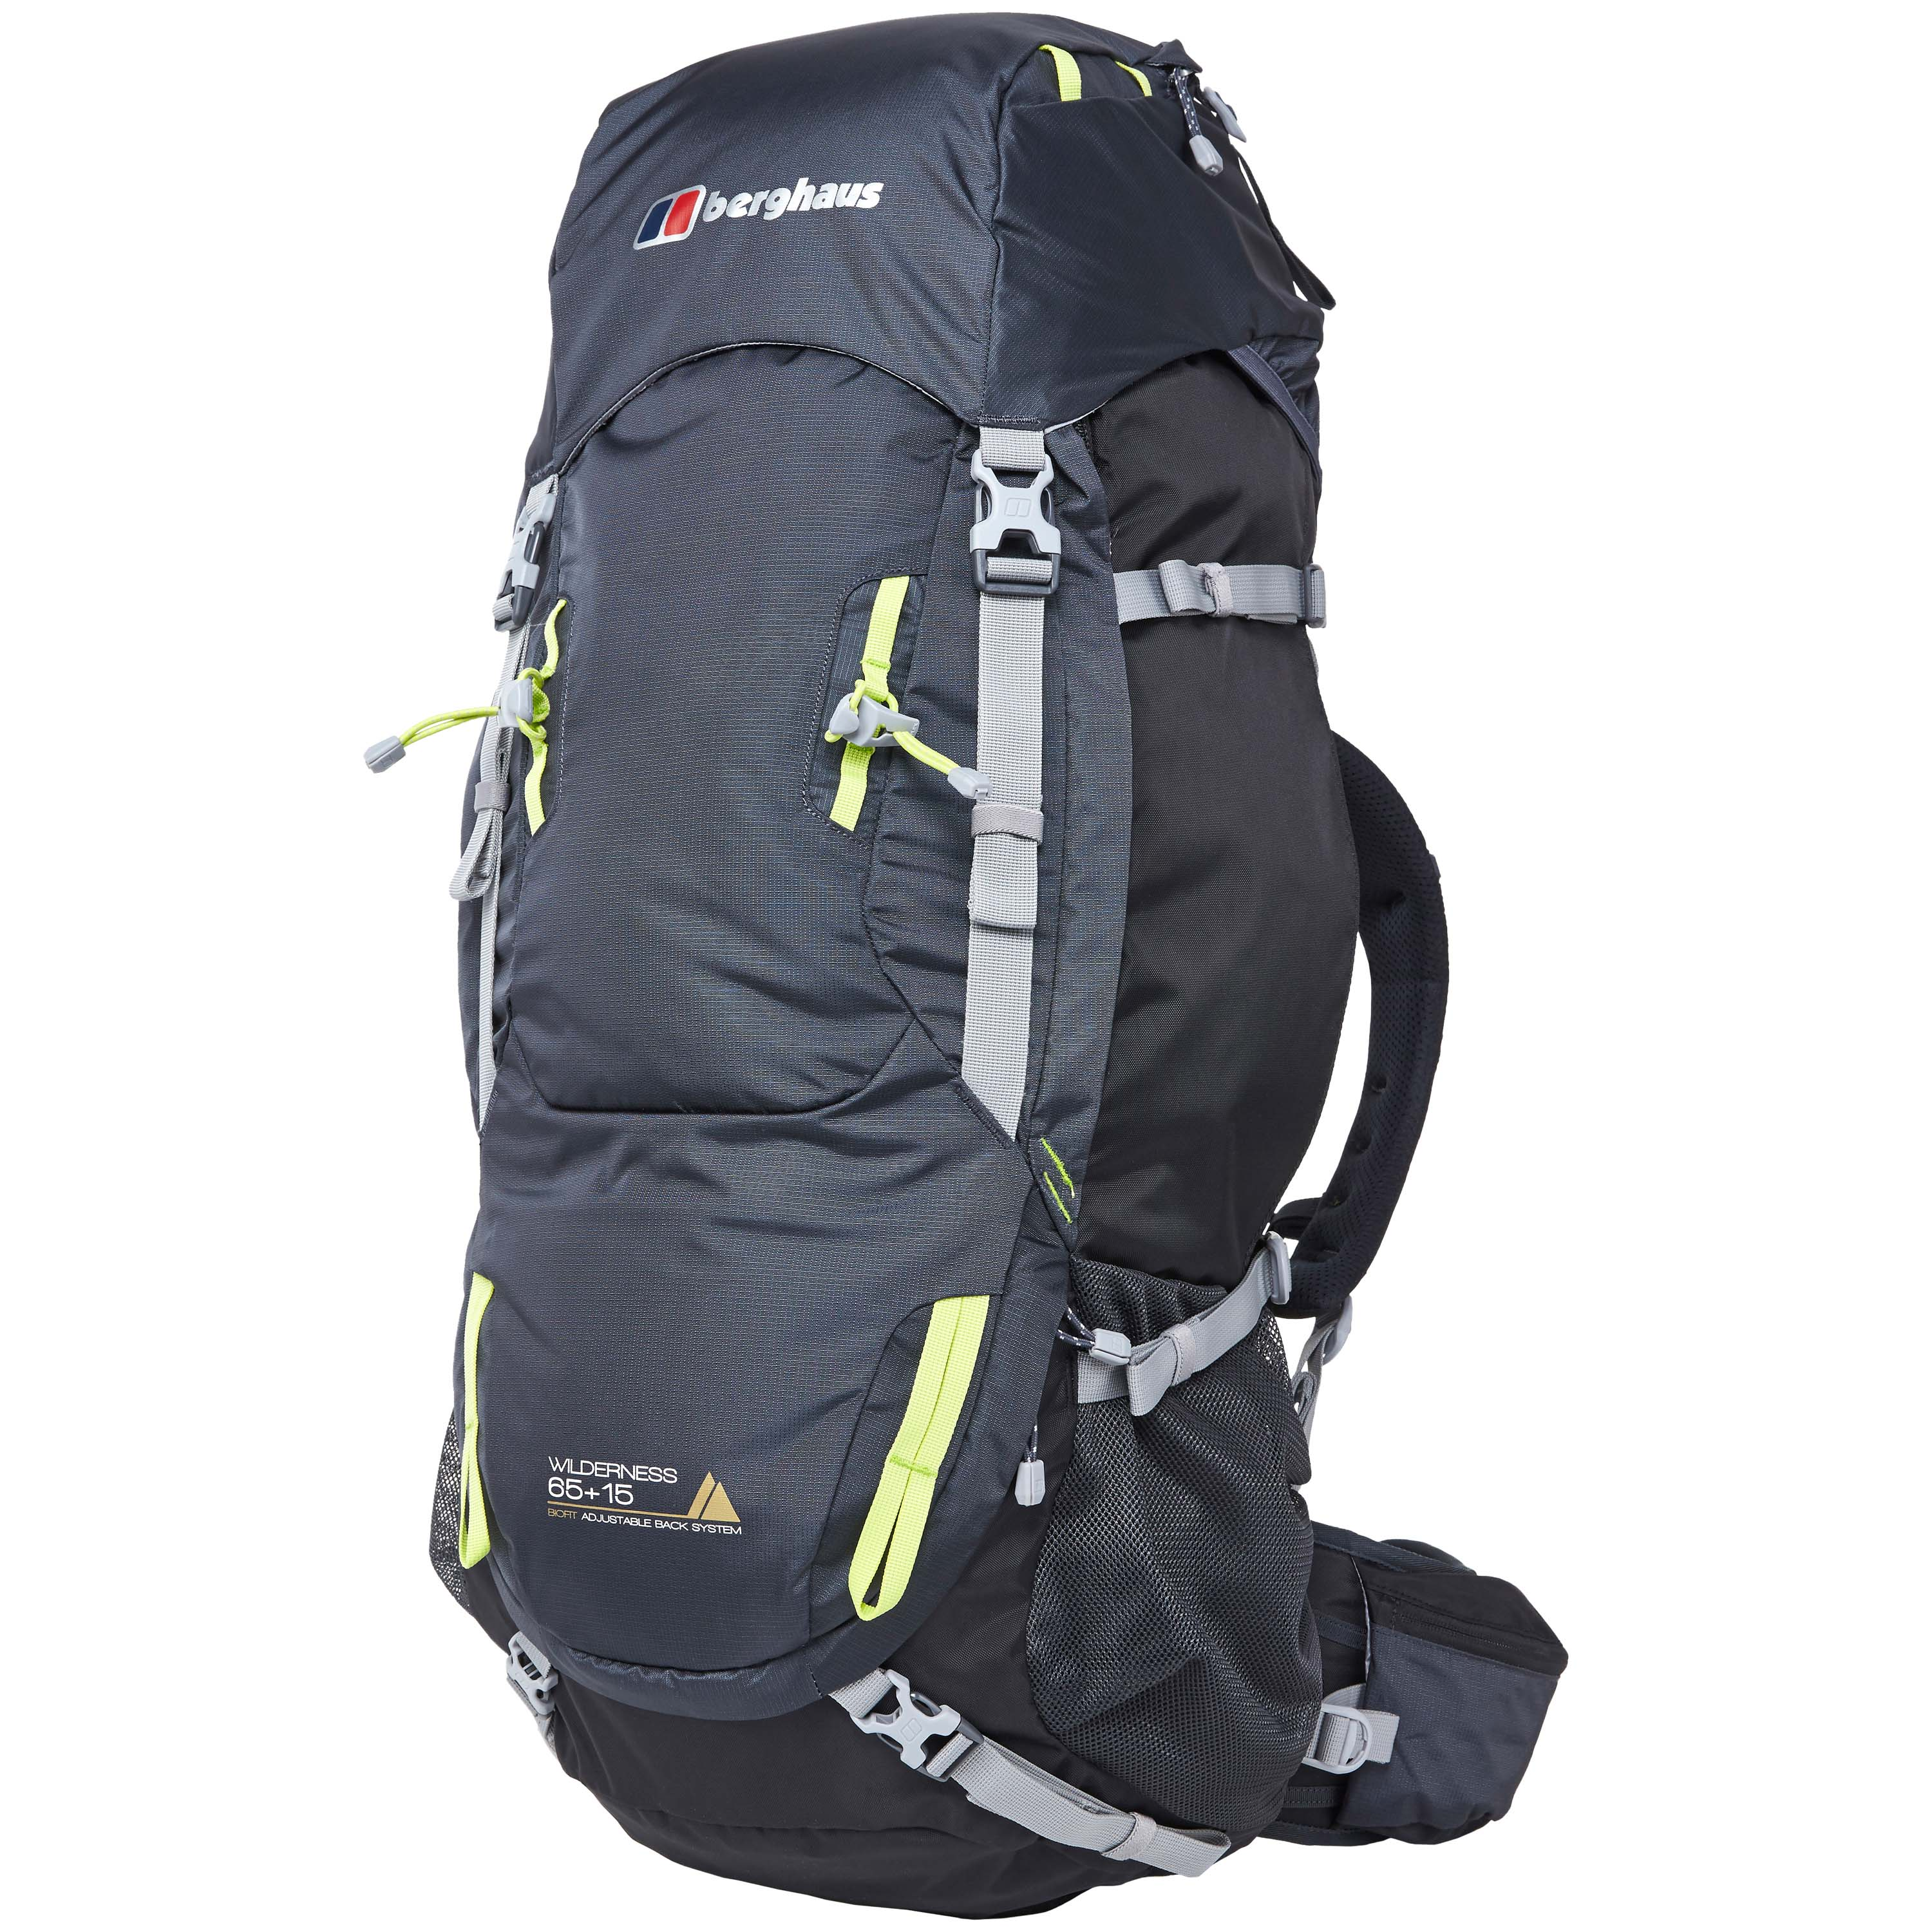 Berghaus Backpack Wilderness 65 + 15 carbon